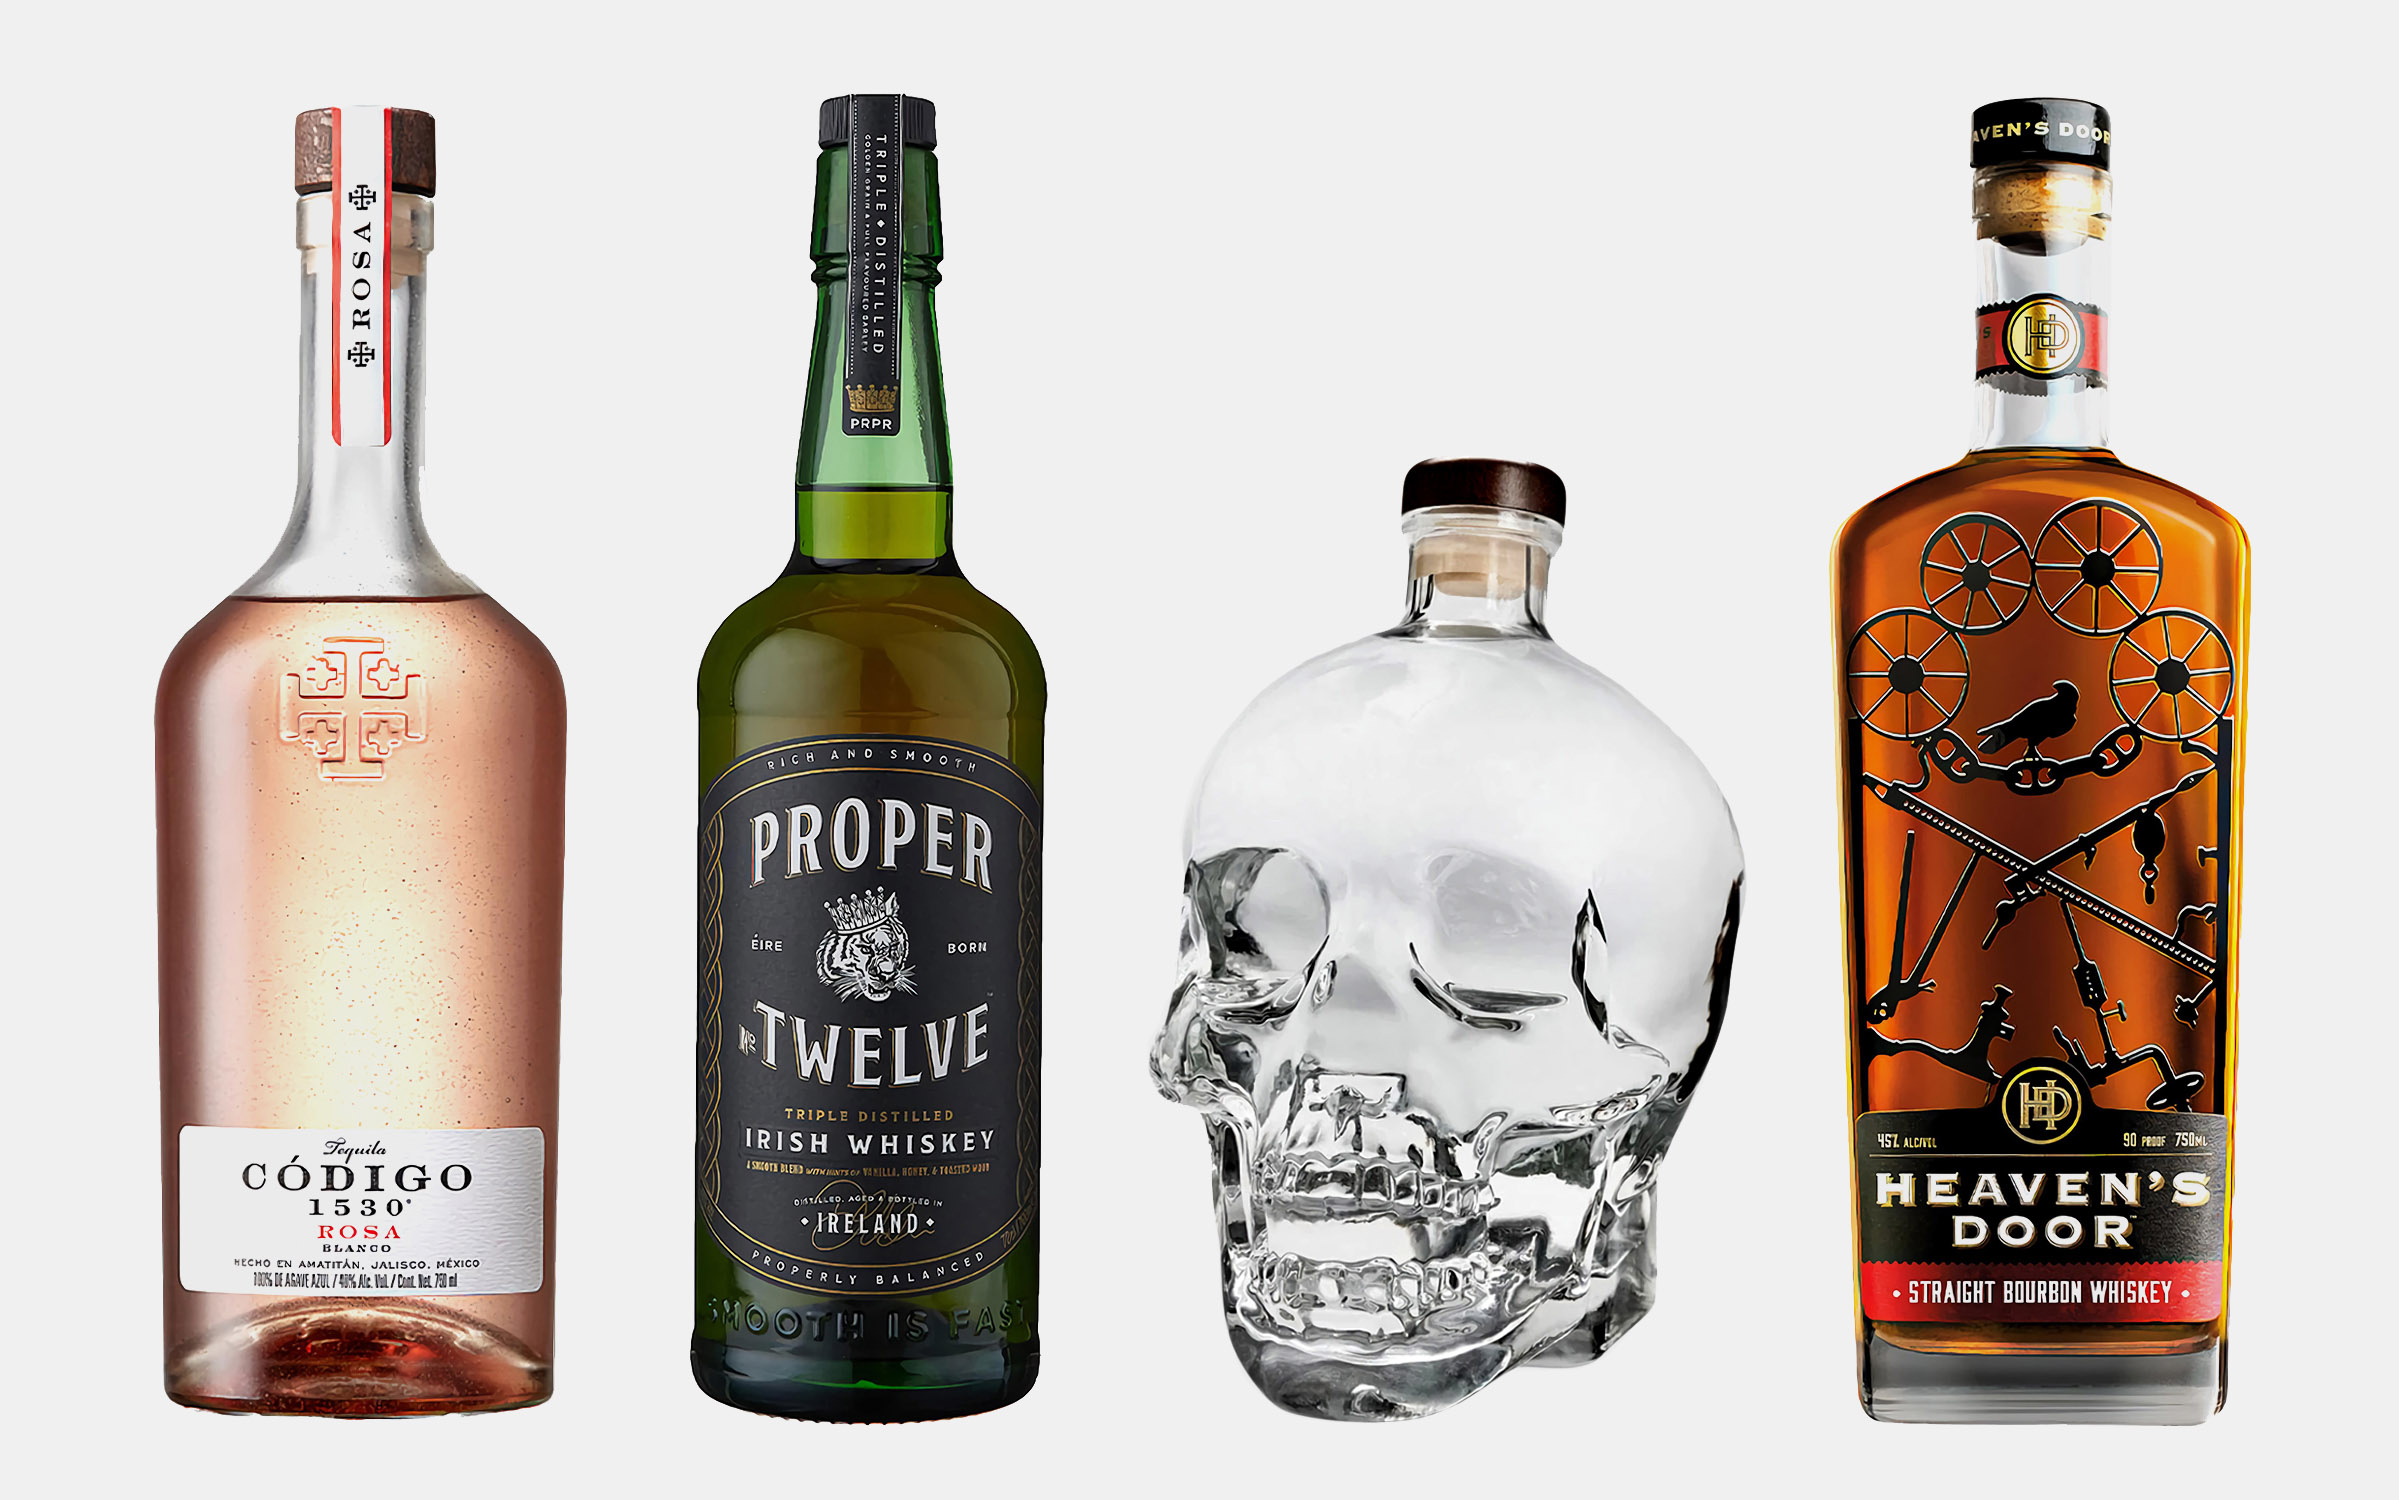 12 Best Celebrity Liquor Brands to Drink This Year